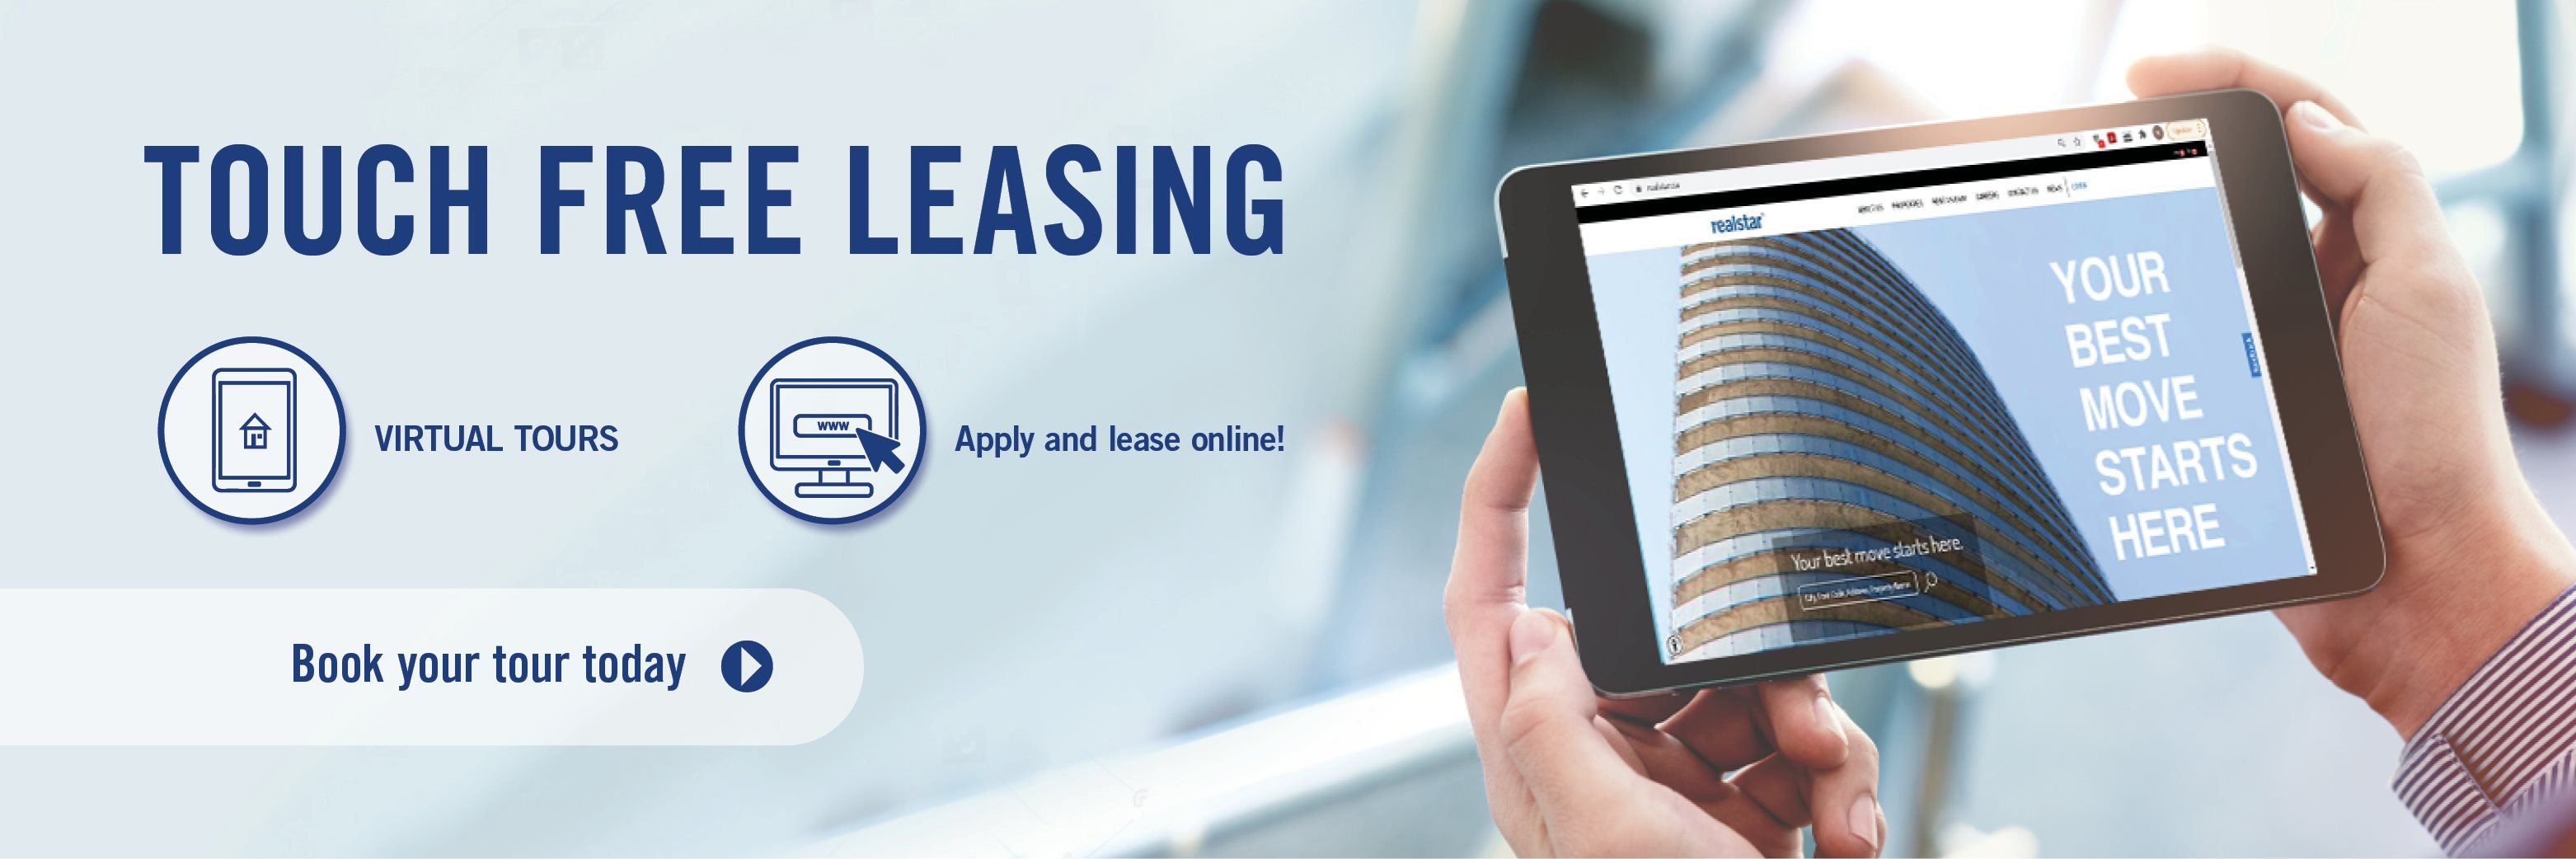 Now Offering Touch Free Leasing